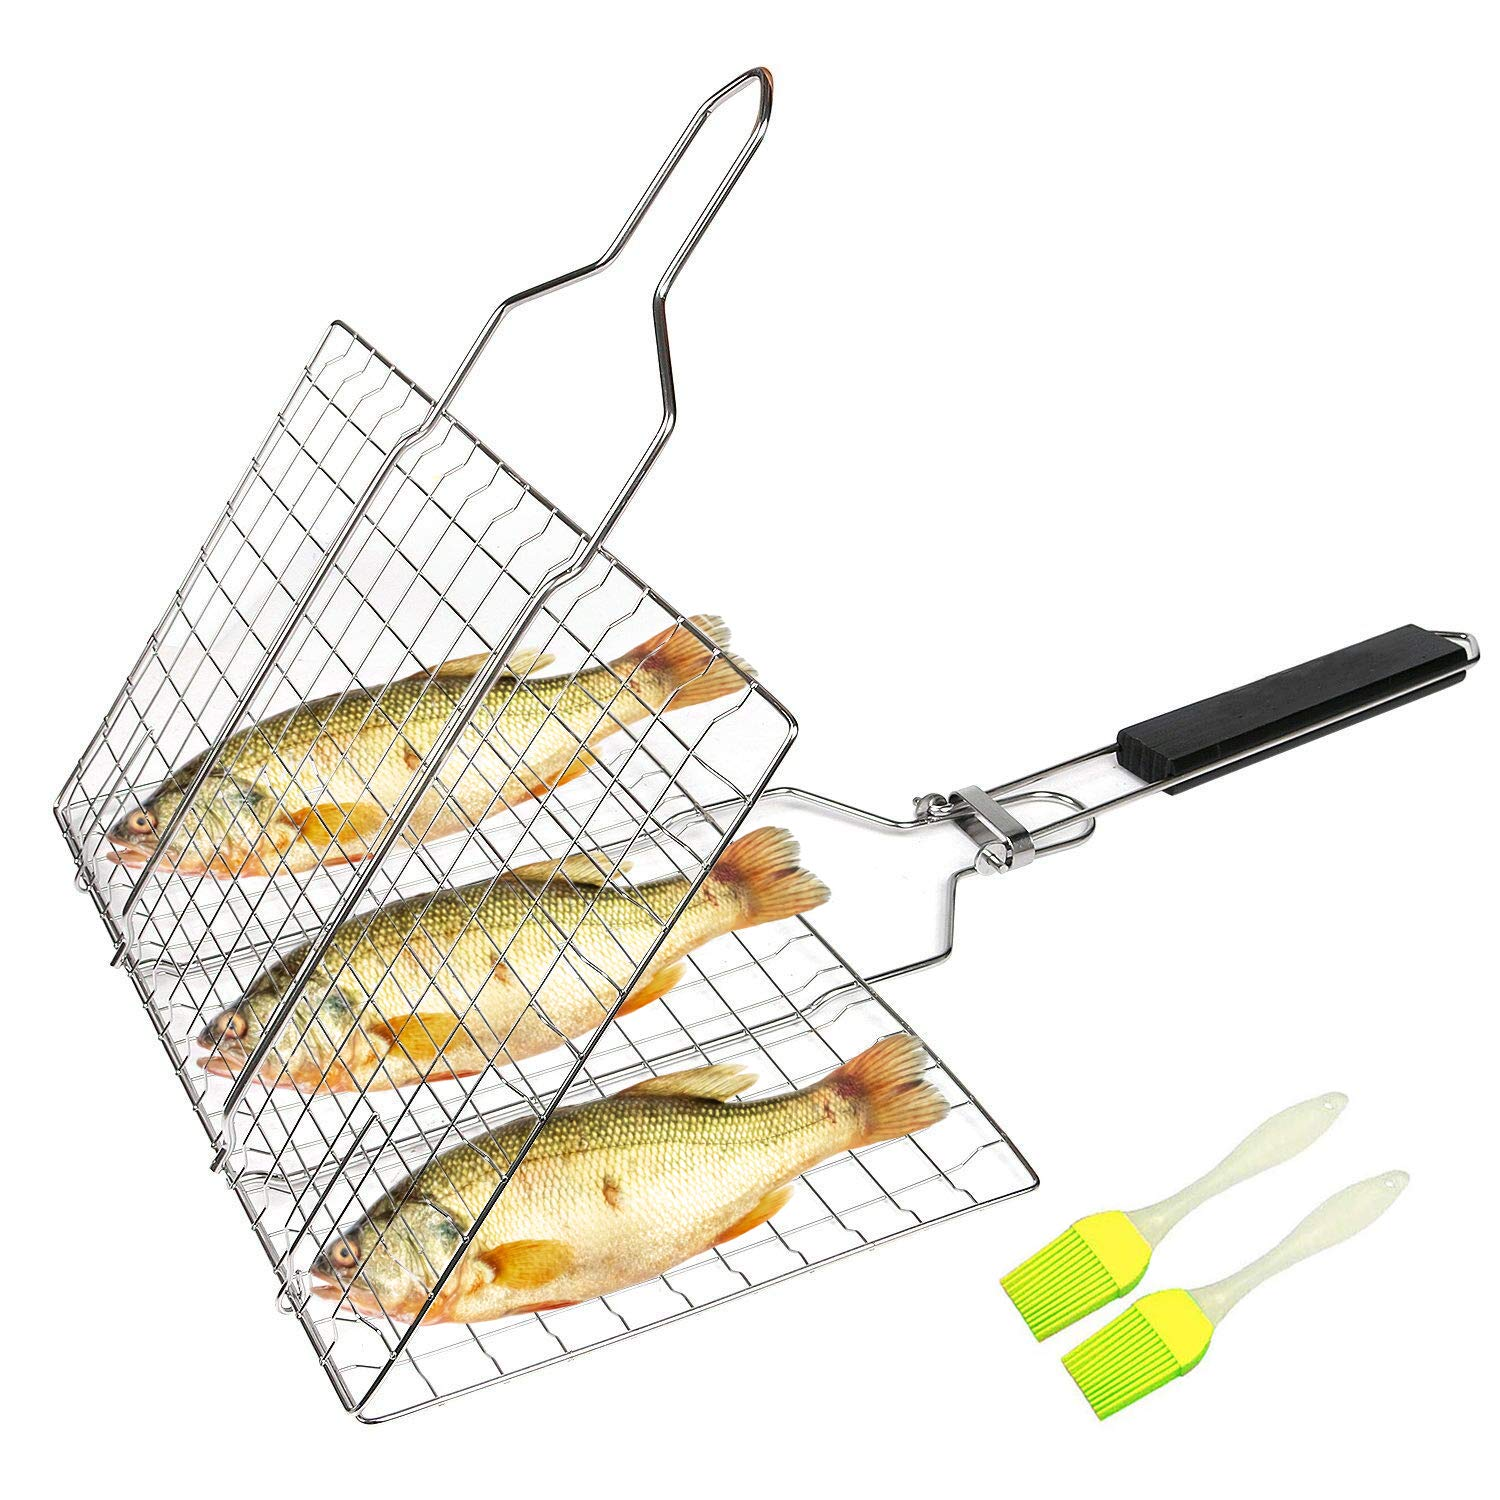 SHAN PU Grill Basket BBQ Grilling Basket with Removable Handle for Fish,Vegetables,Steak, Shrimp, Meat,Food Stainless Steel Grill Accessories by SHAN PU